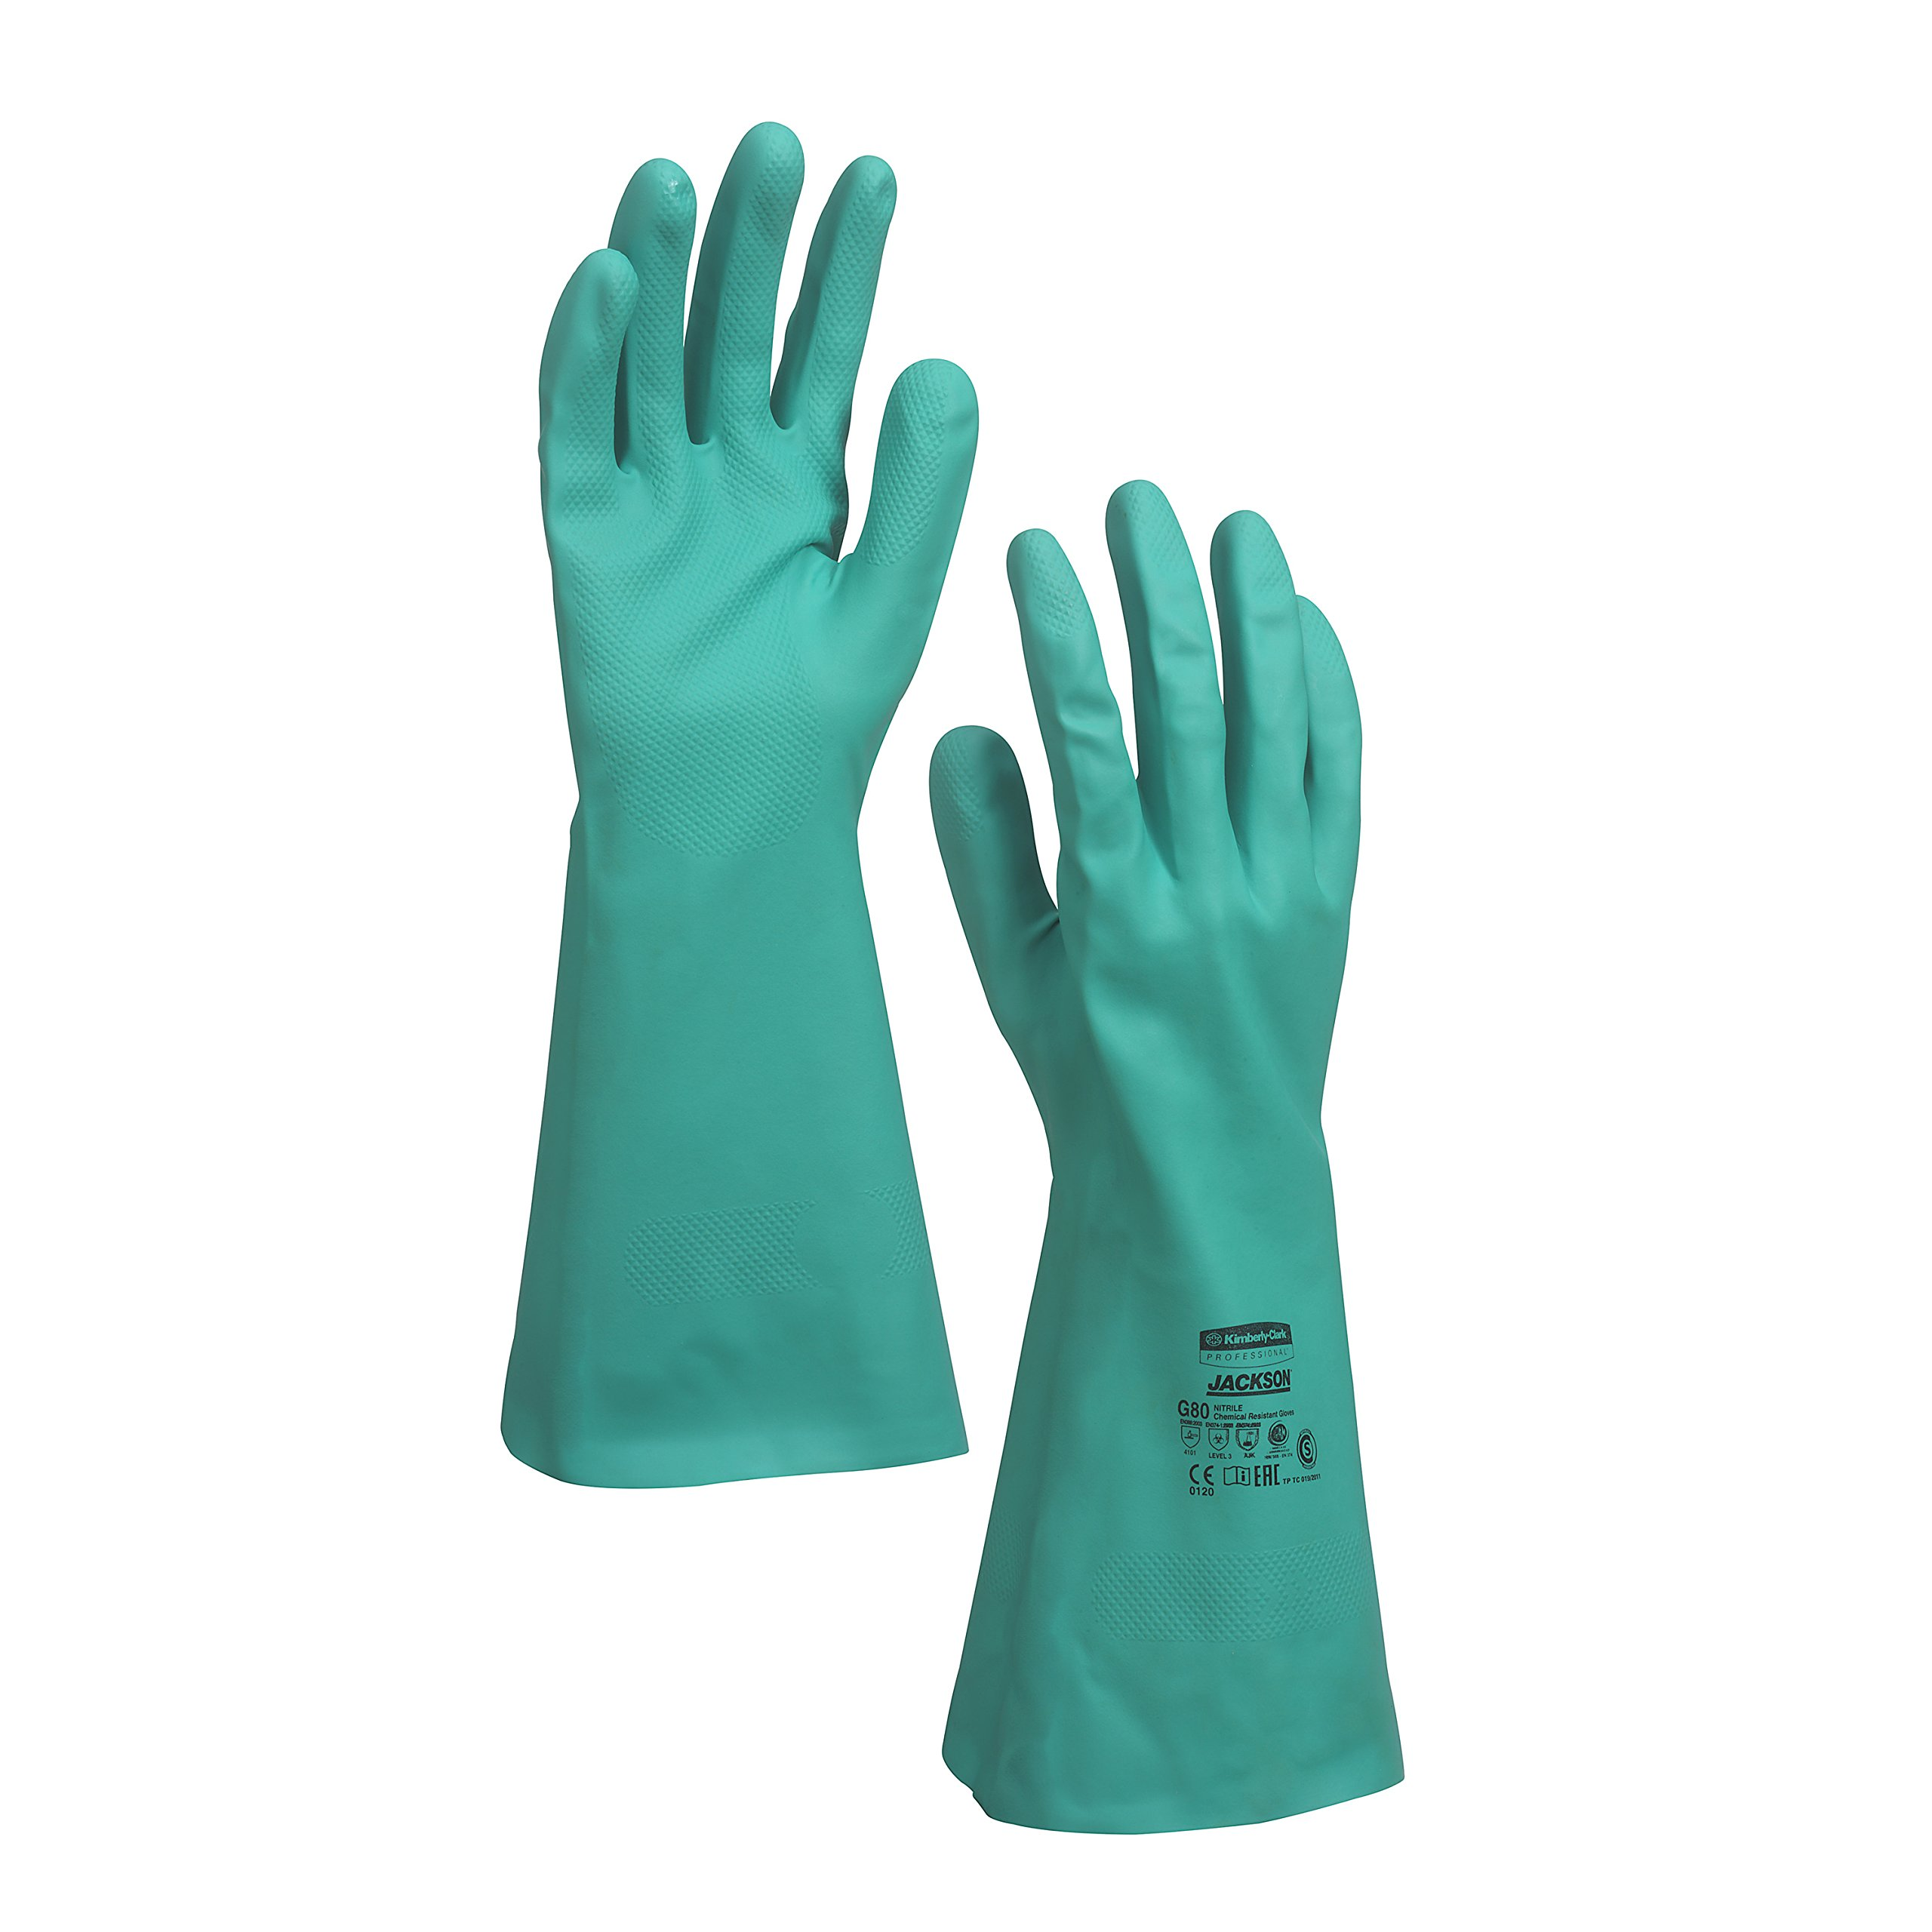 Jackson Safety G80 Nitrile Chemical Resistant Gloves (94448), Green, XL (10), 13'' Long, 15 Mil, 60 Pairs/ Case, 5 Packs of 12 Pairs